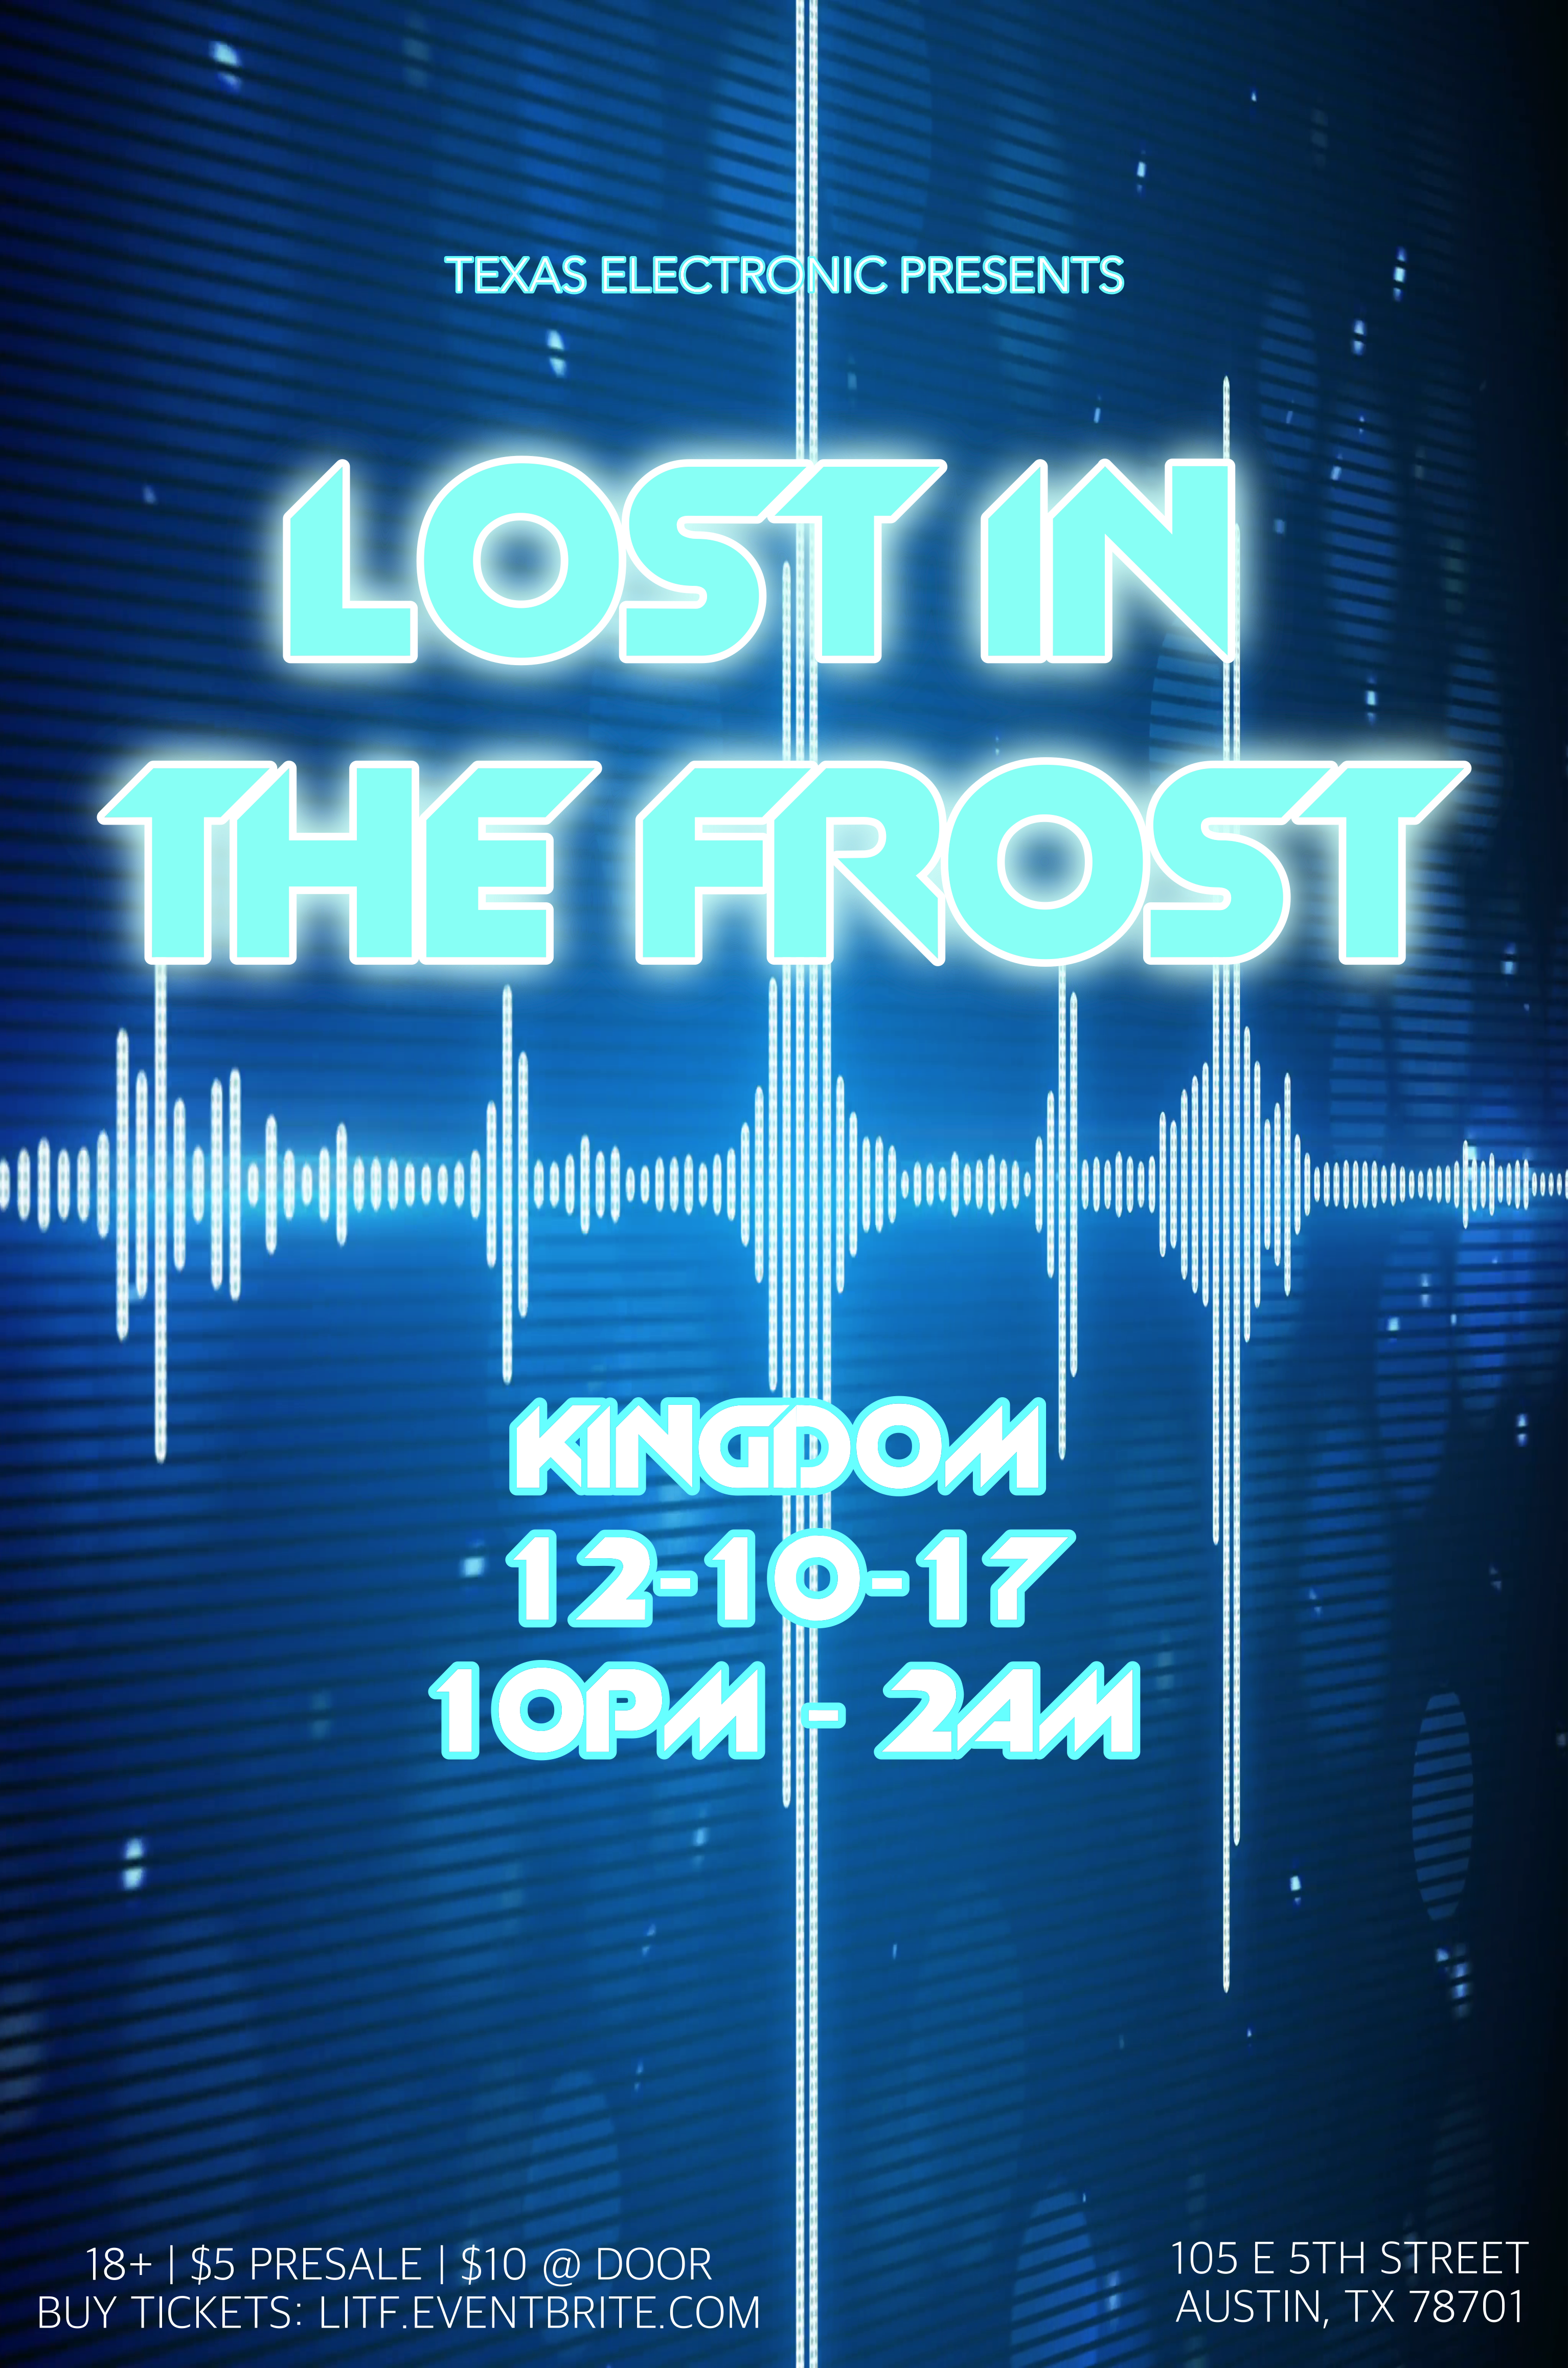 Texas Electronic Presents: Lost in the Frost | Austin, TX | Kingdom | December 10, 2017